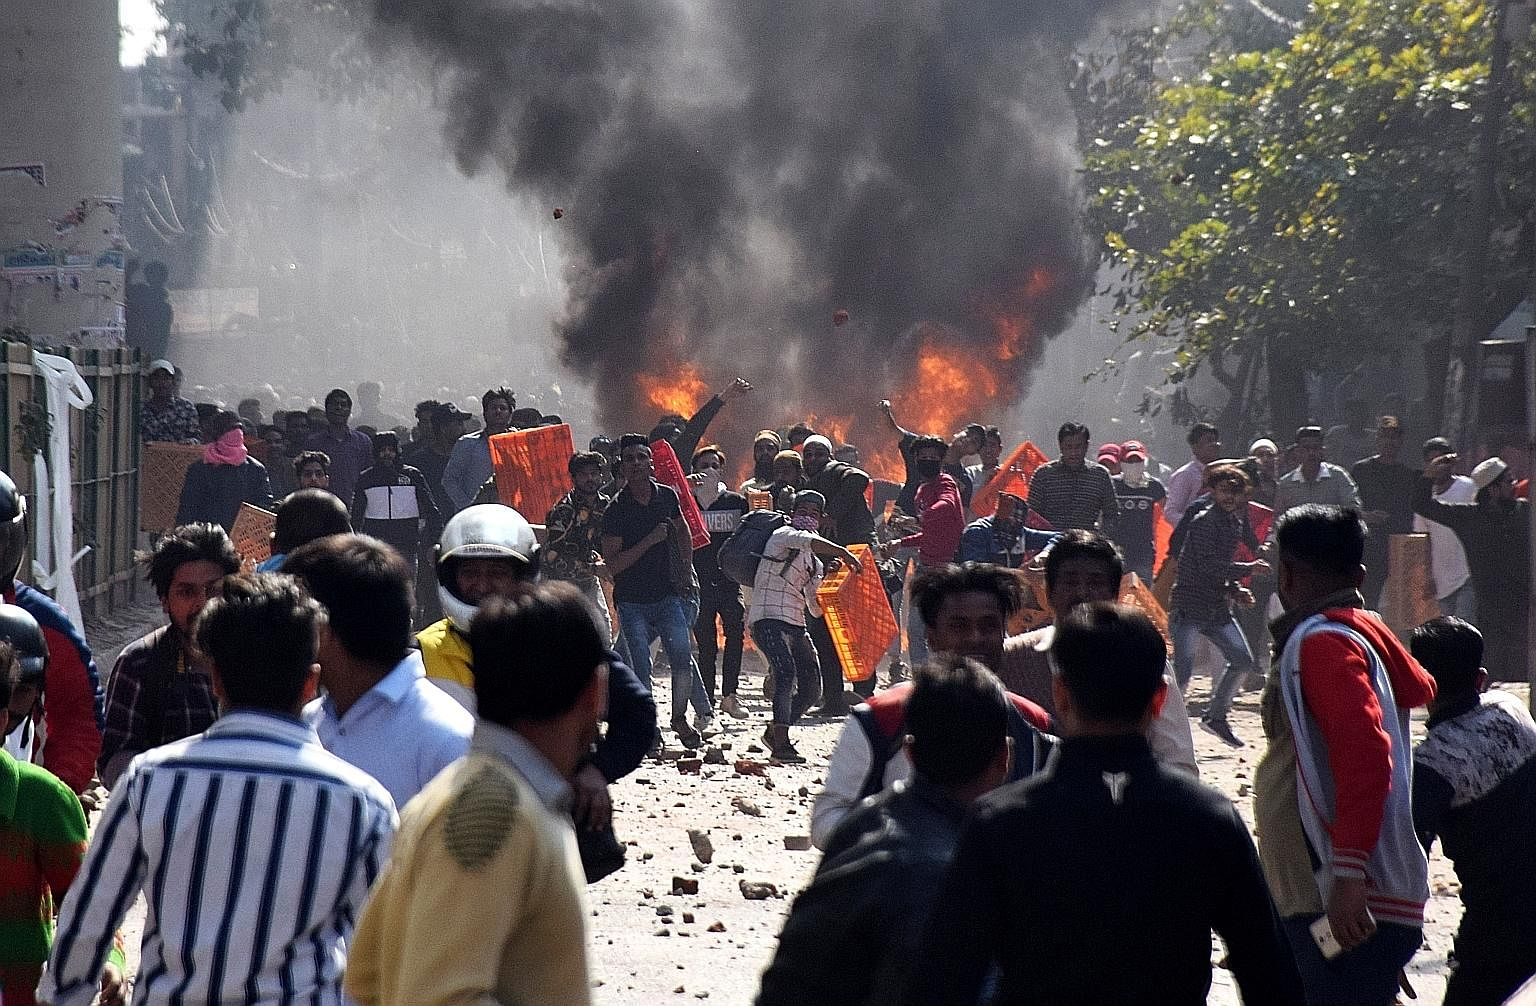 Men pelting stones and starting fires during clashes in eastern Delhi between groups for and against India's Citizenship Amendment Act.